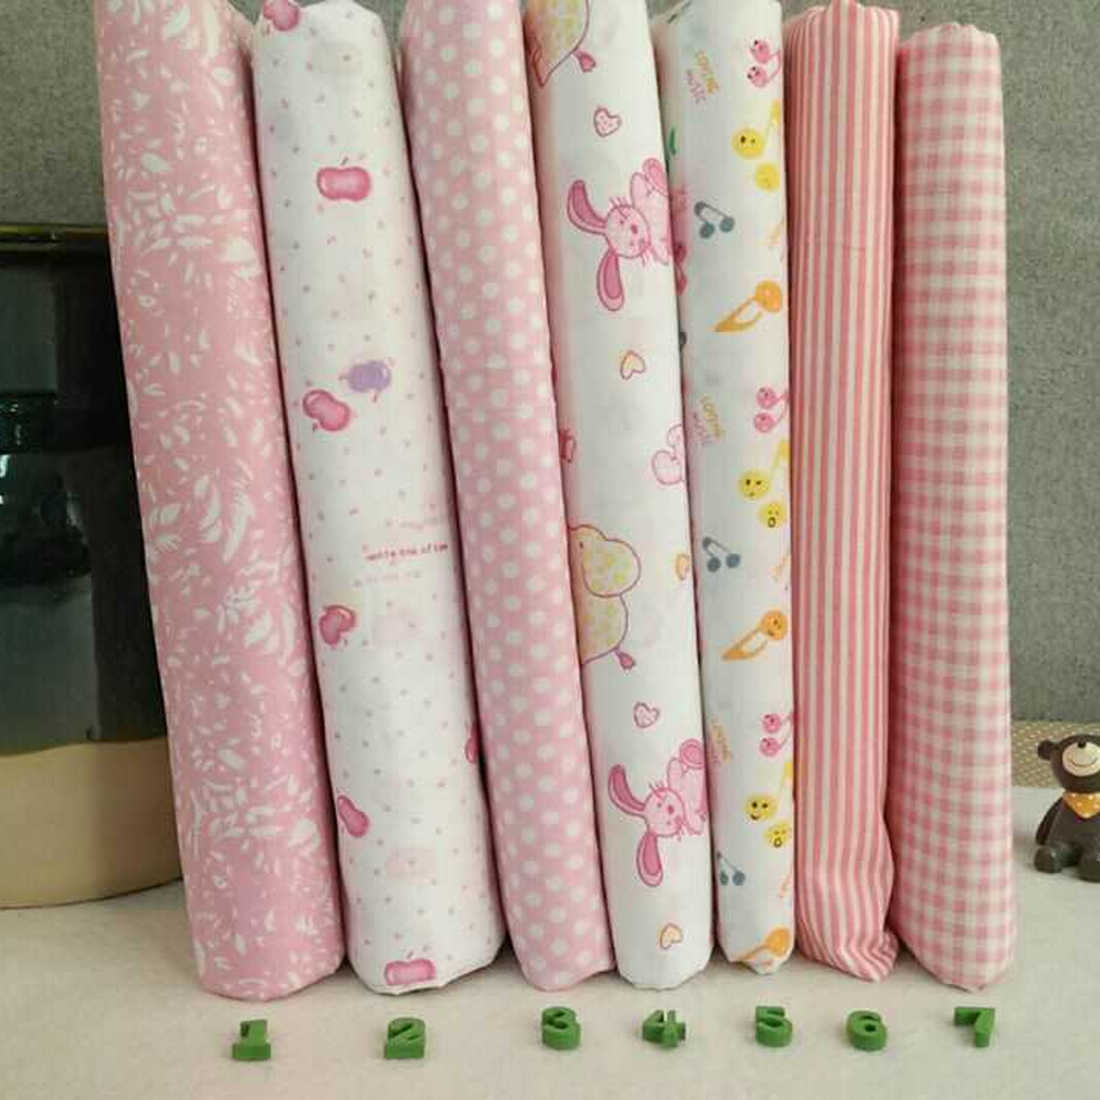 New 2018 Super Soft Felt Fabric 7Pcs/set Mixed Cotton Fabric For Patchwork Cloth DIY Handmade Sewing Home Decoration 6 pattern